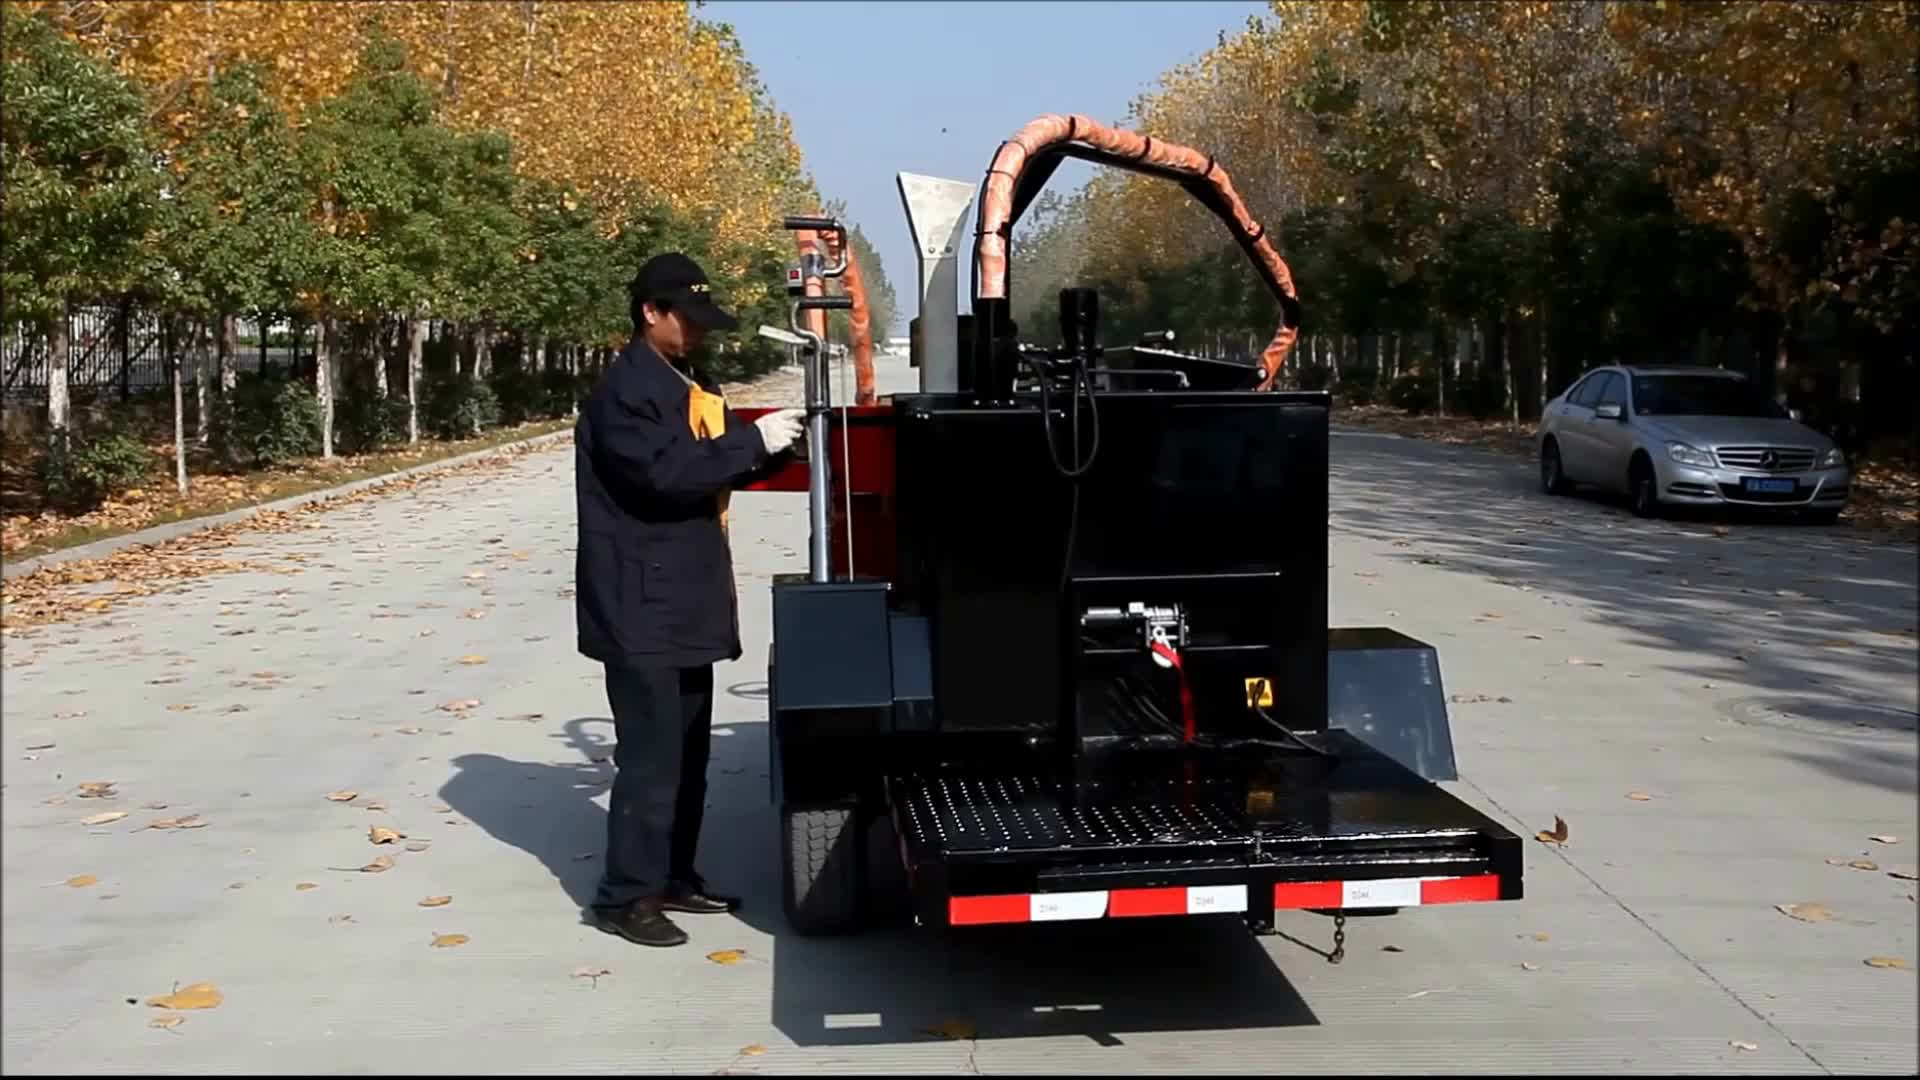 Road crack filling and sealing machine driveway road Construction equipment road breakdown crack processing